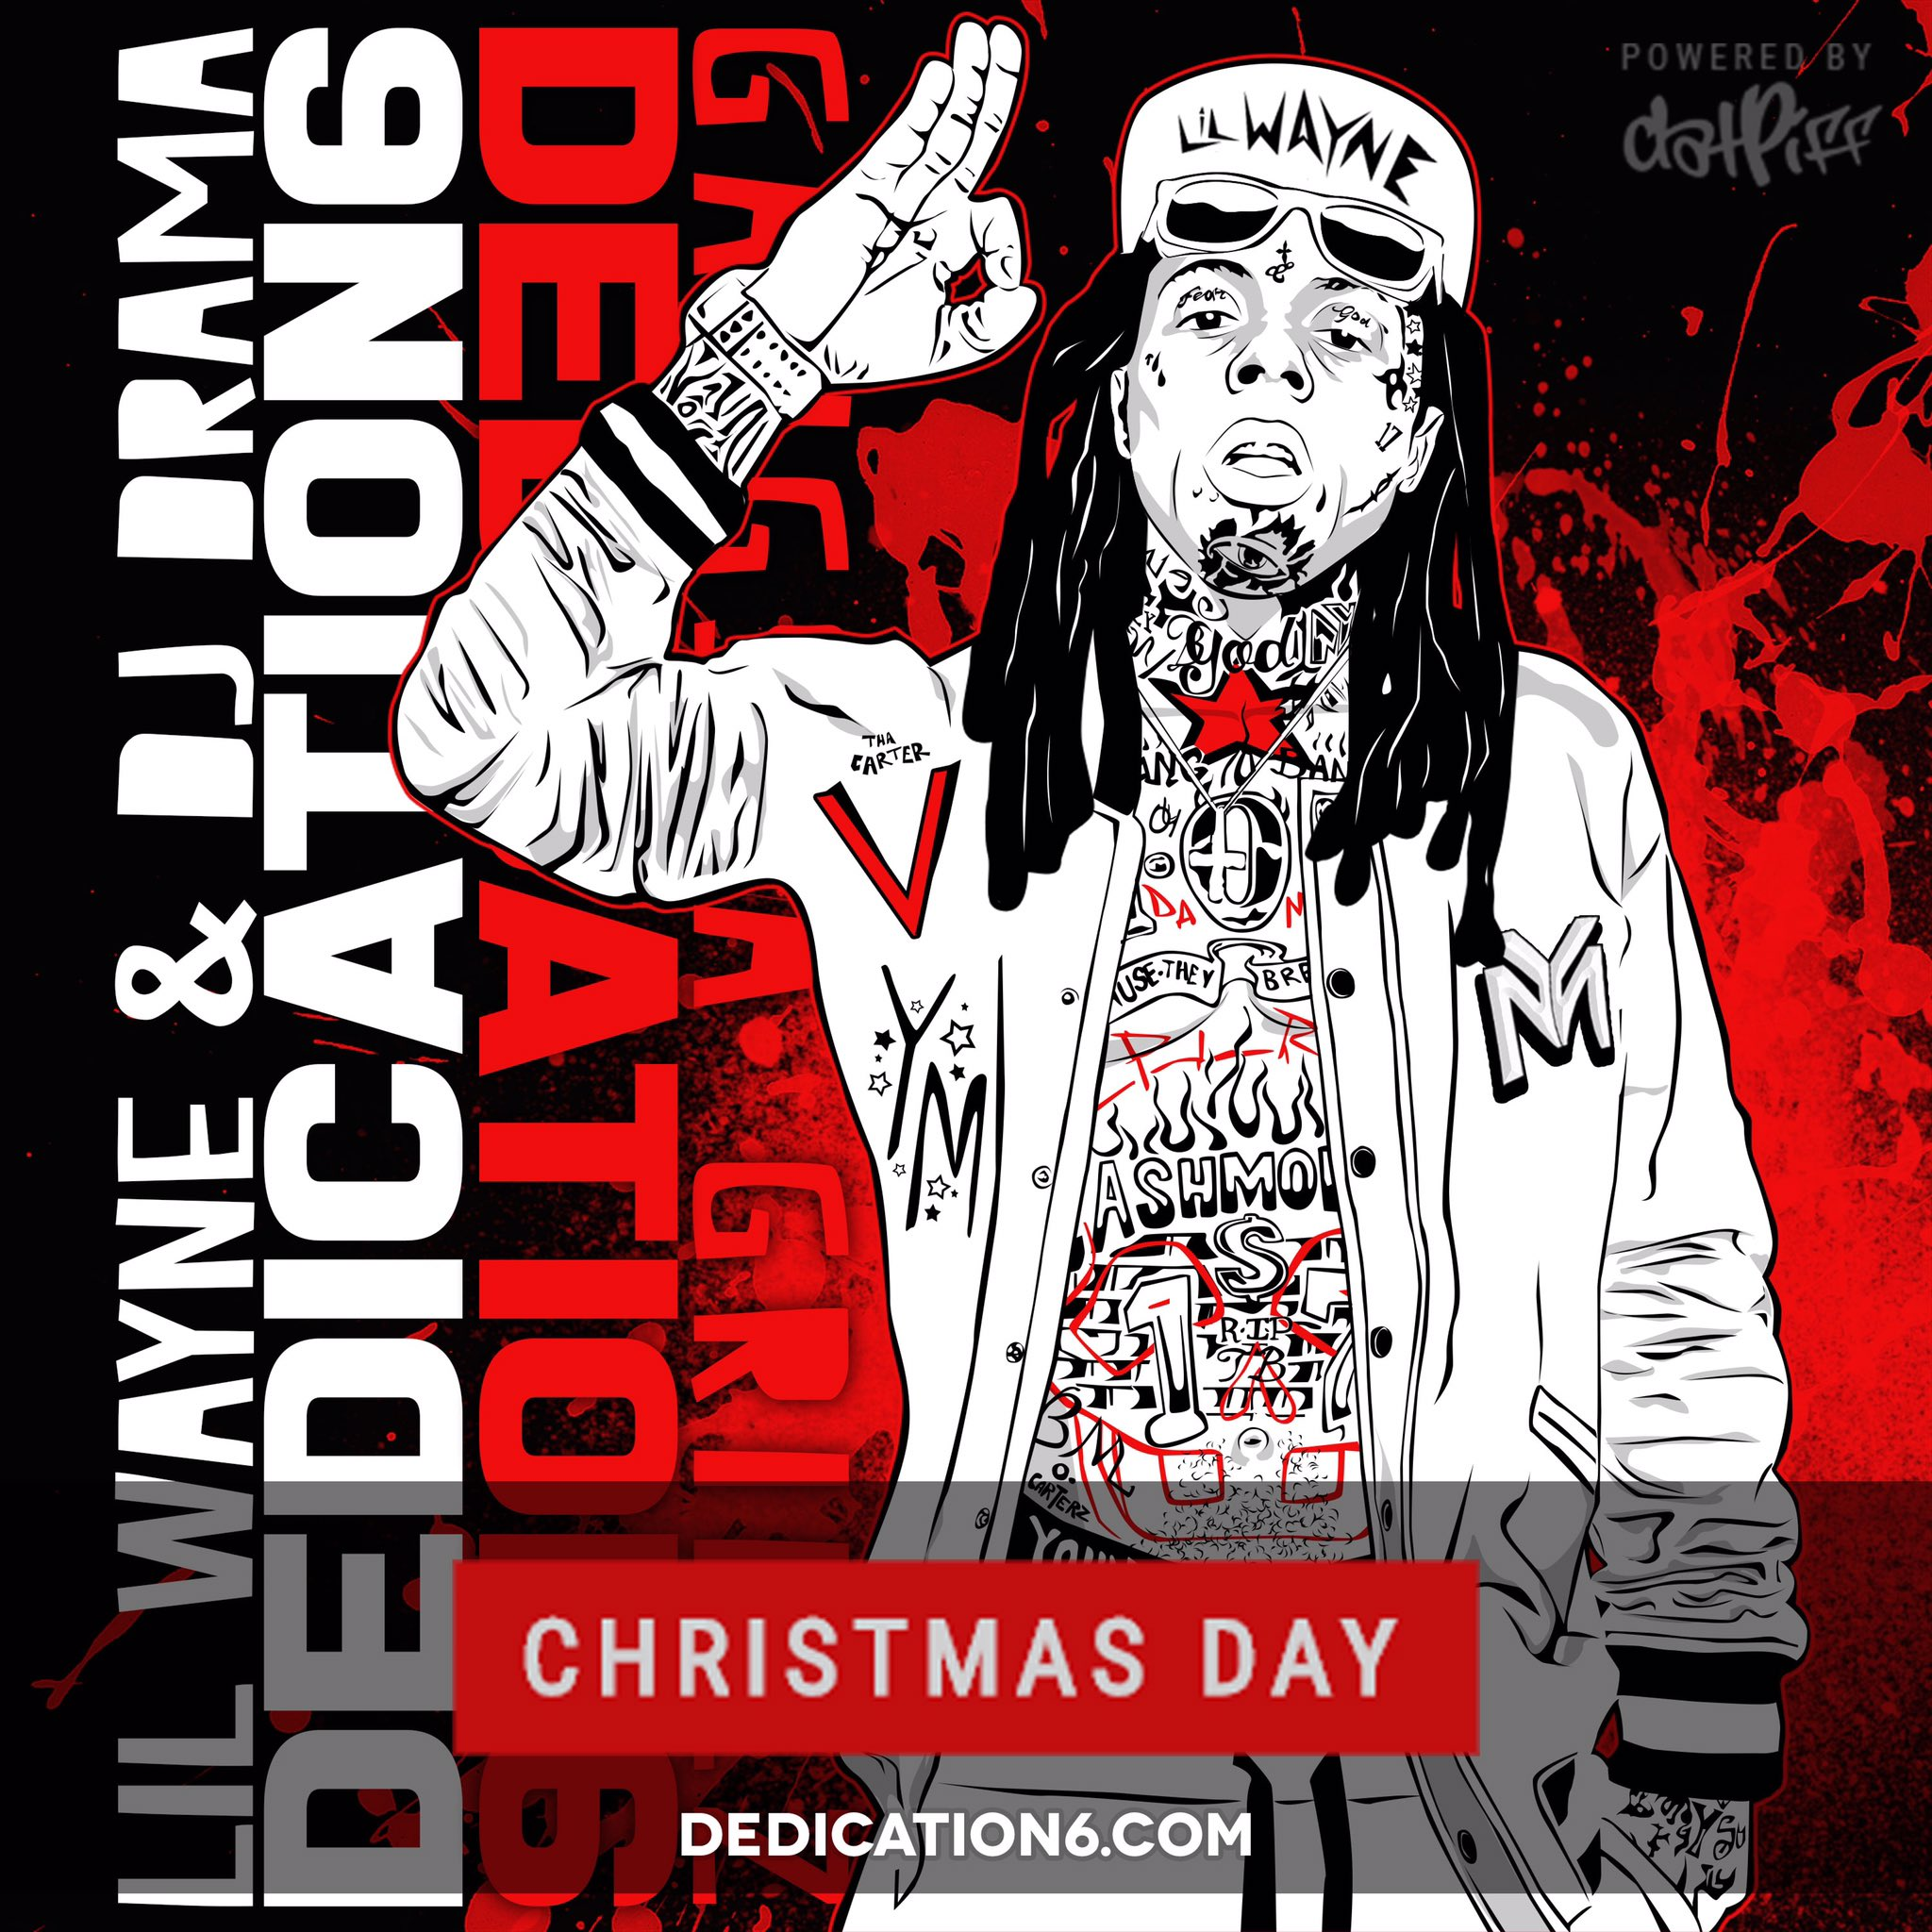 It's time! Sign up for updates and music before drop date! To My fans, I do this for y'all! #D6 MERRY CHRISTMAS https://t.co/G2OccnC66f